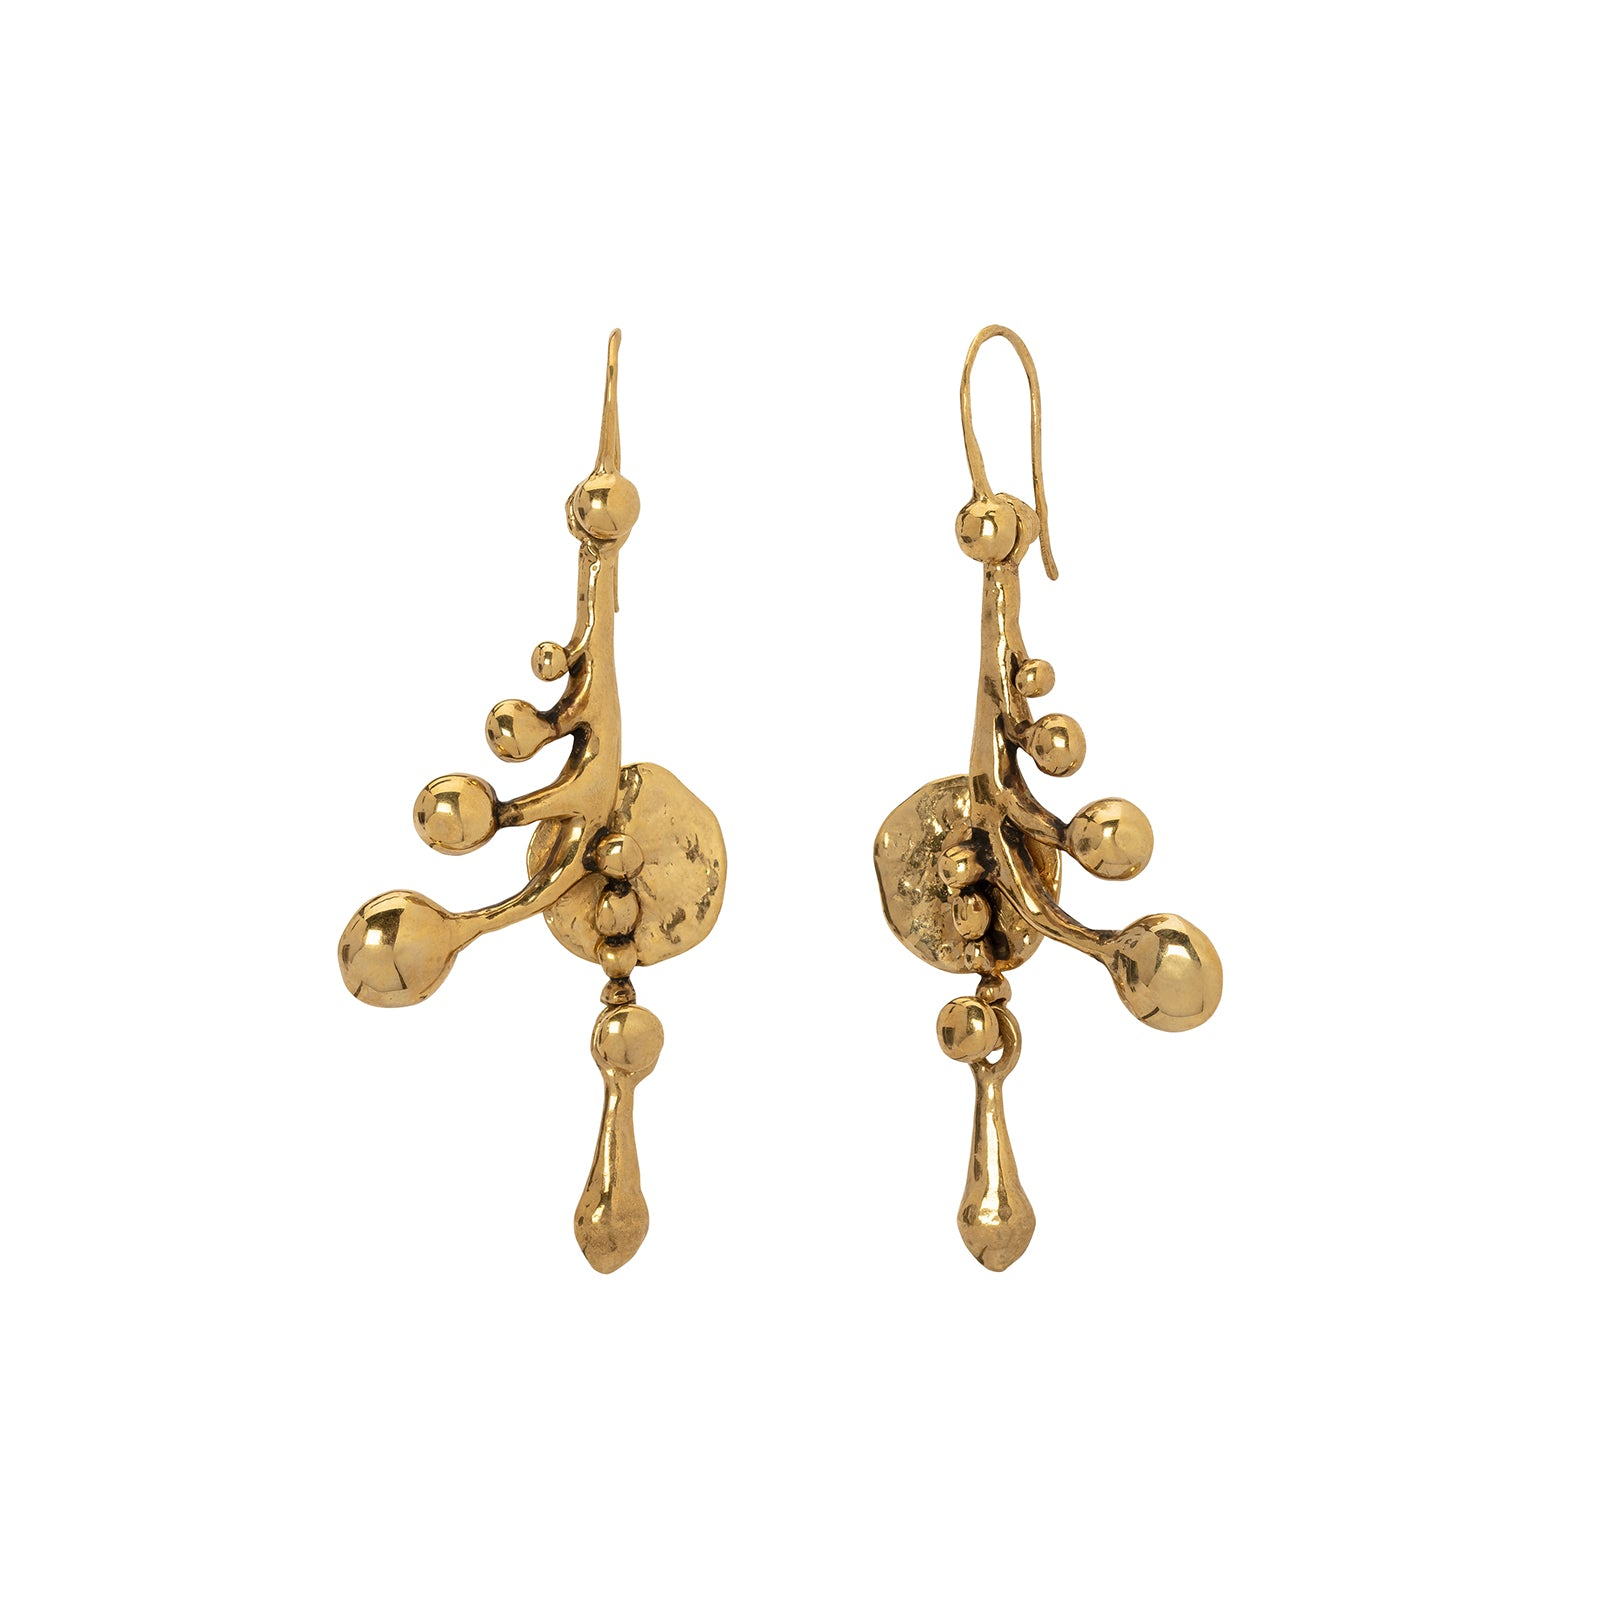 Lisa Eisner Jewelry Sea Wheat Earrings - Earrings - Broken English Jewelry